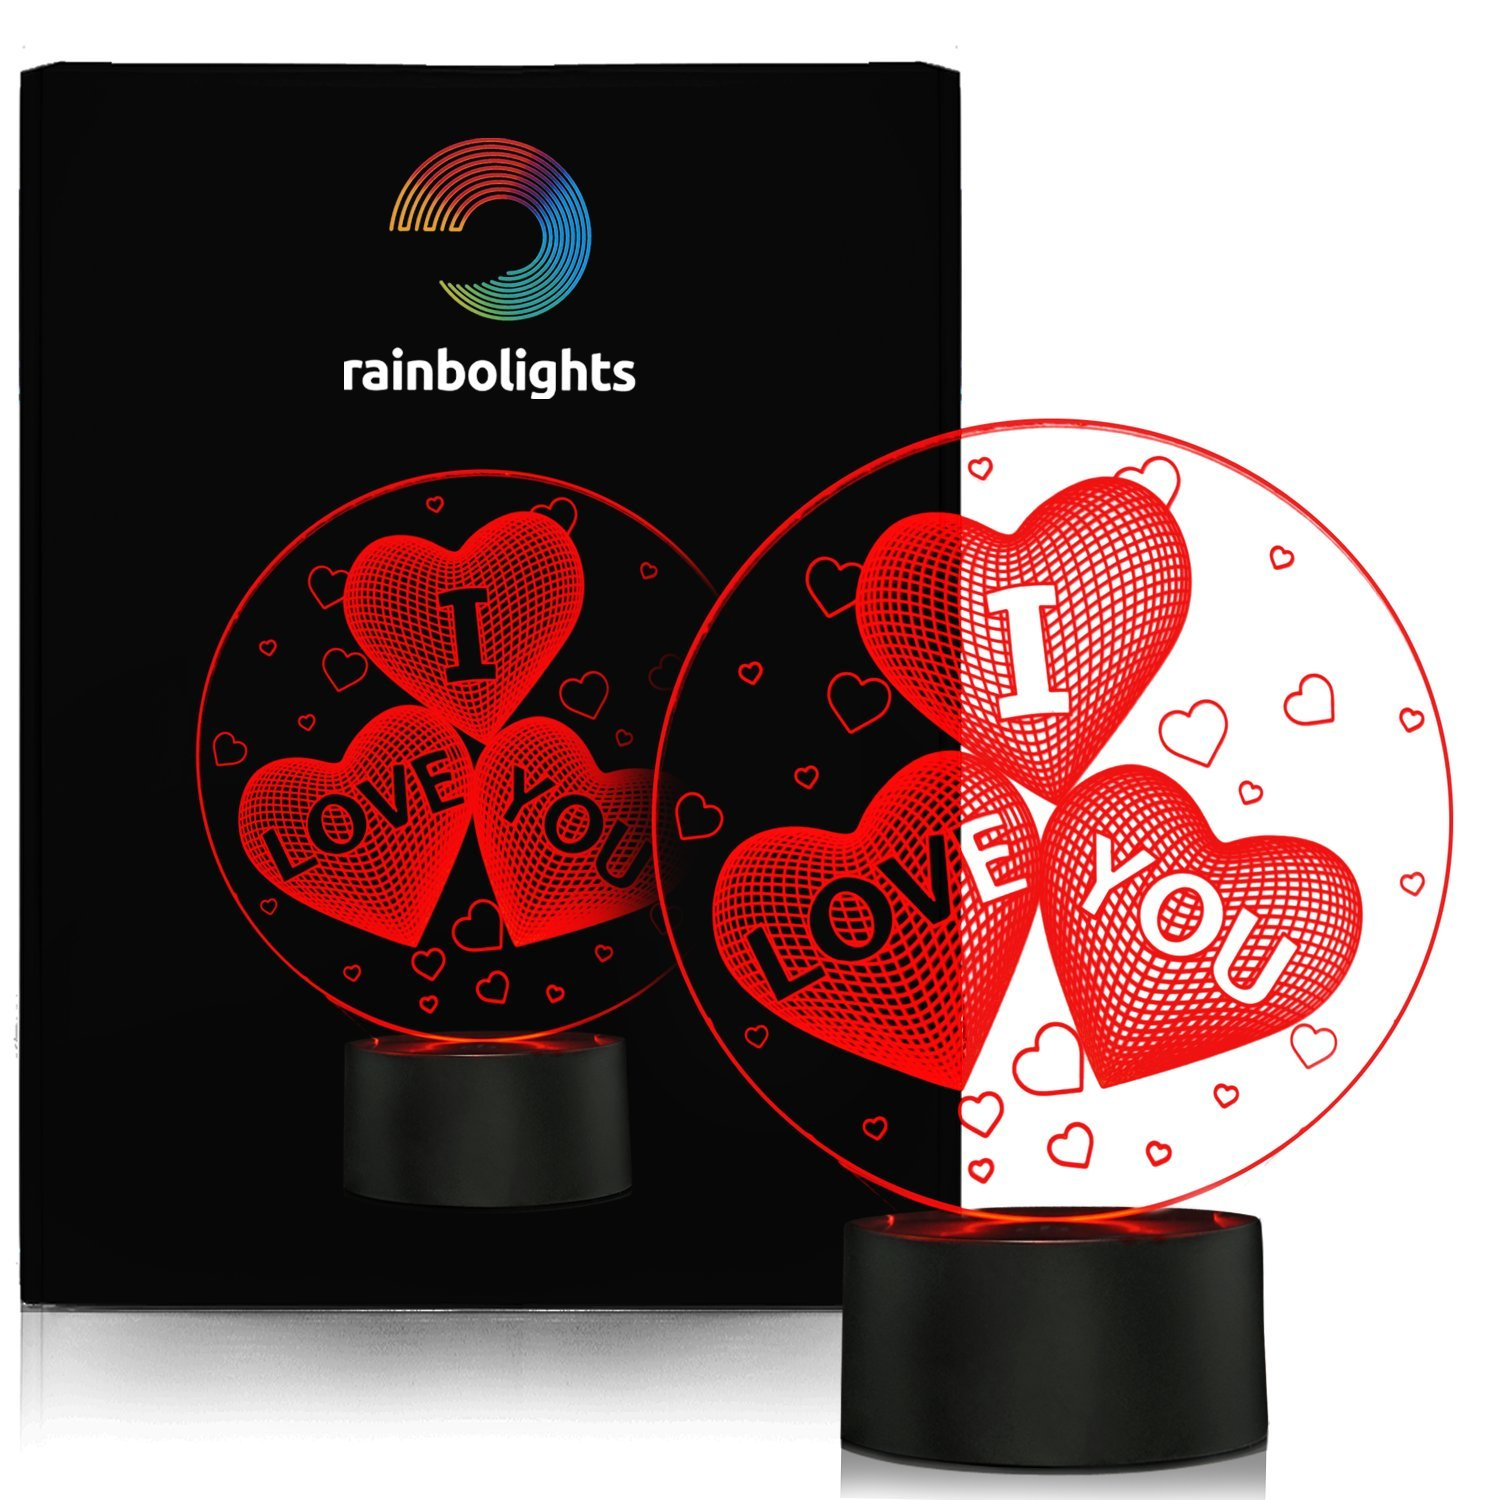 amazoncom i love you gift 3d amazing illusion light 7 color by a great anniversary gift idea or a unique way to say i love you this chistmas